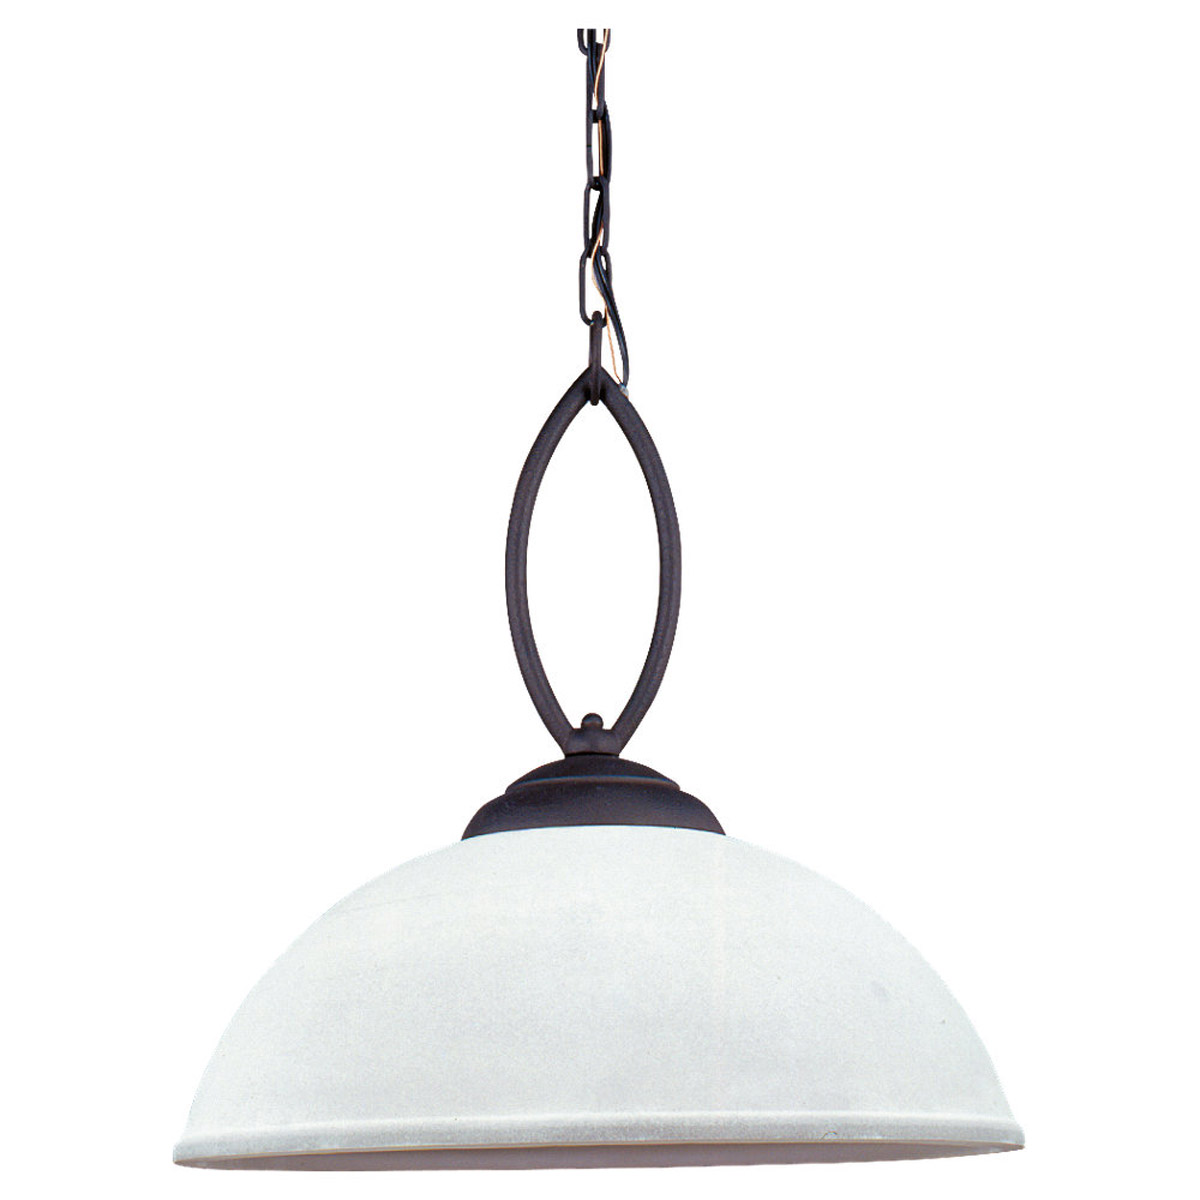 Sea Gull Lighting Pemberton 1 Light Pendant in Peppercorn 65074-799